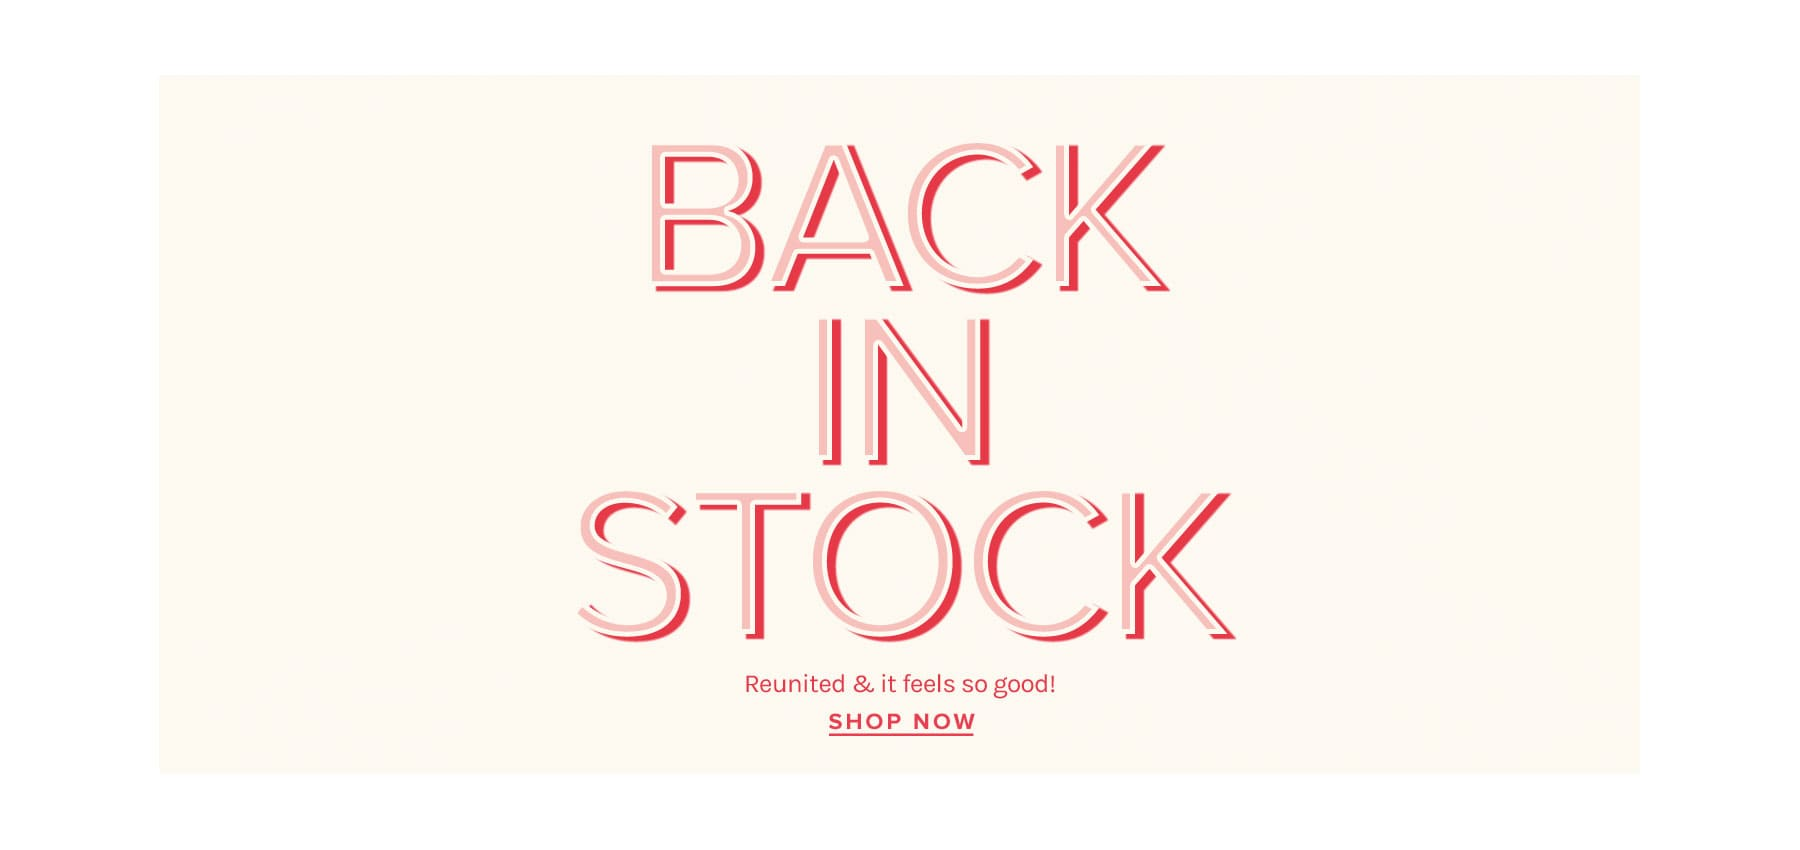 Back In Stock. Reunited & it feels so good! Shop Now